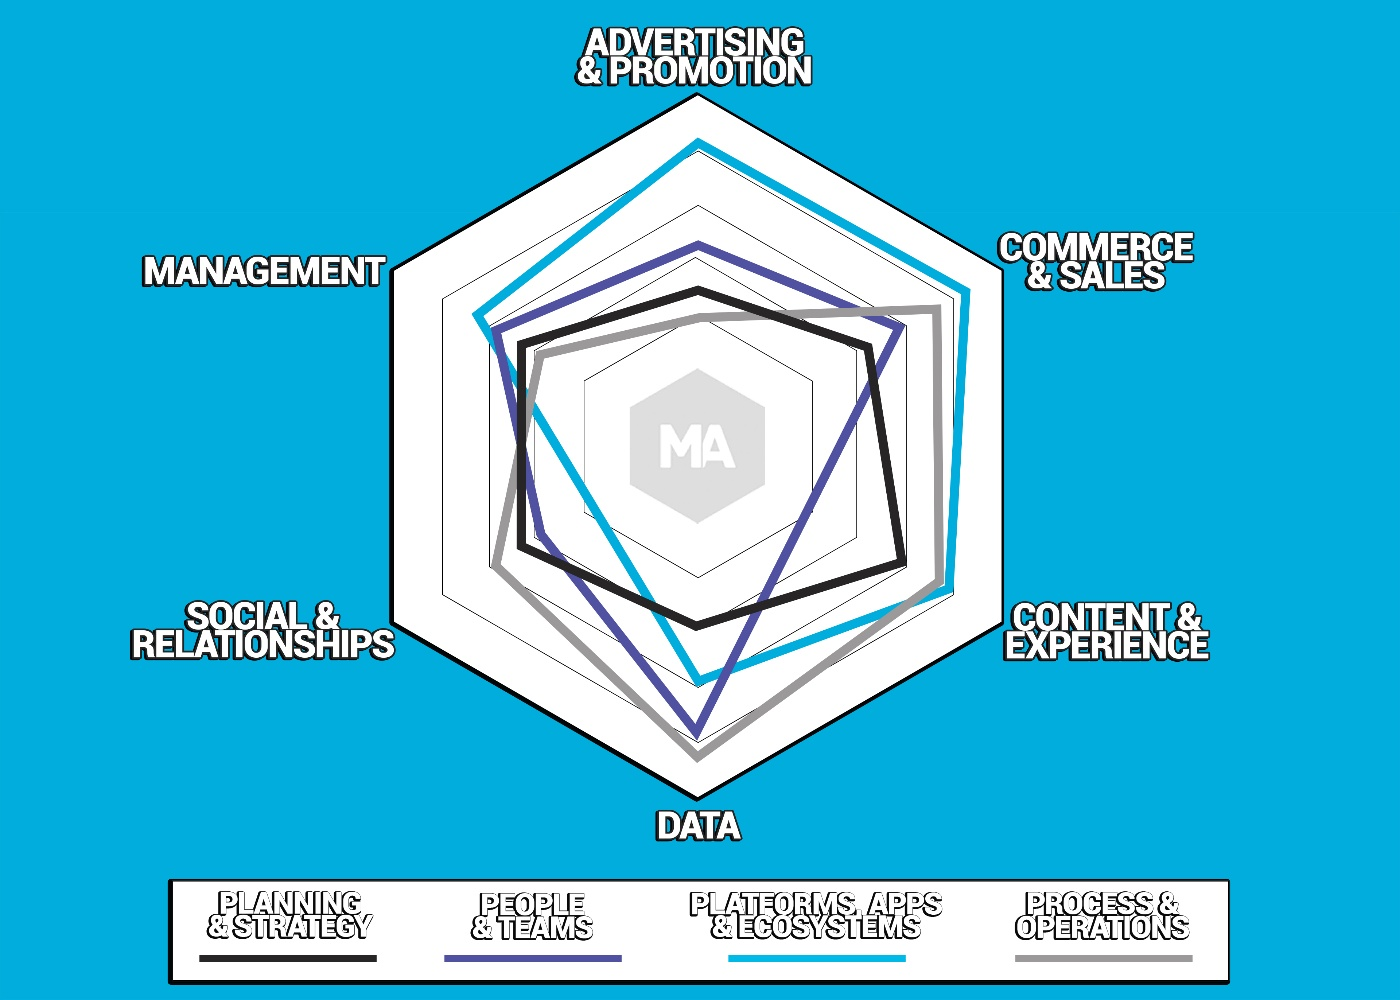 Marketing technology maturity mapping